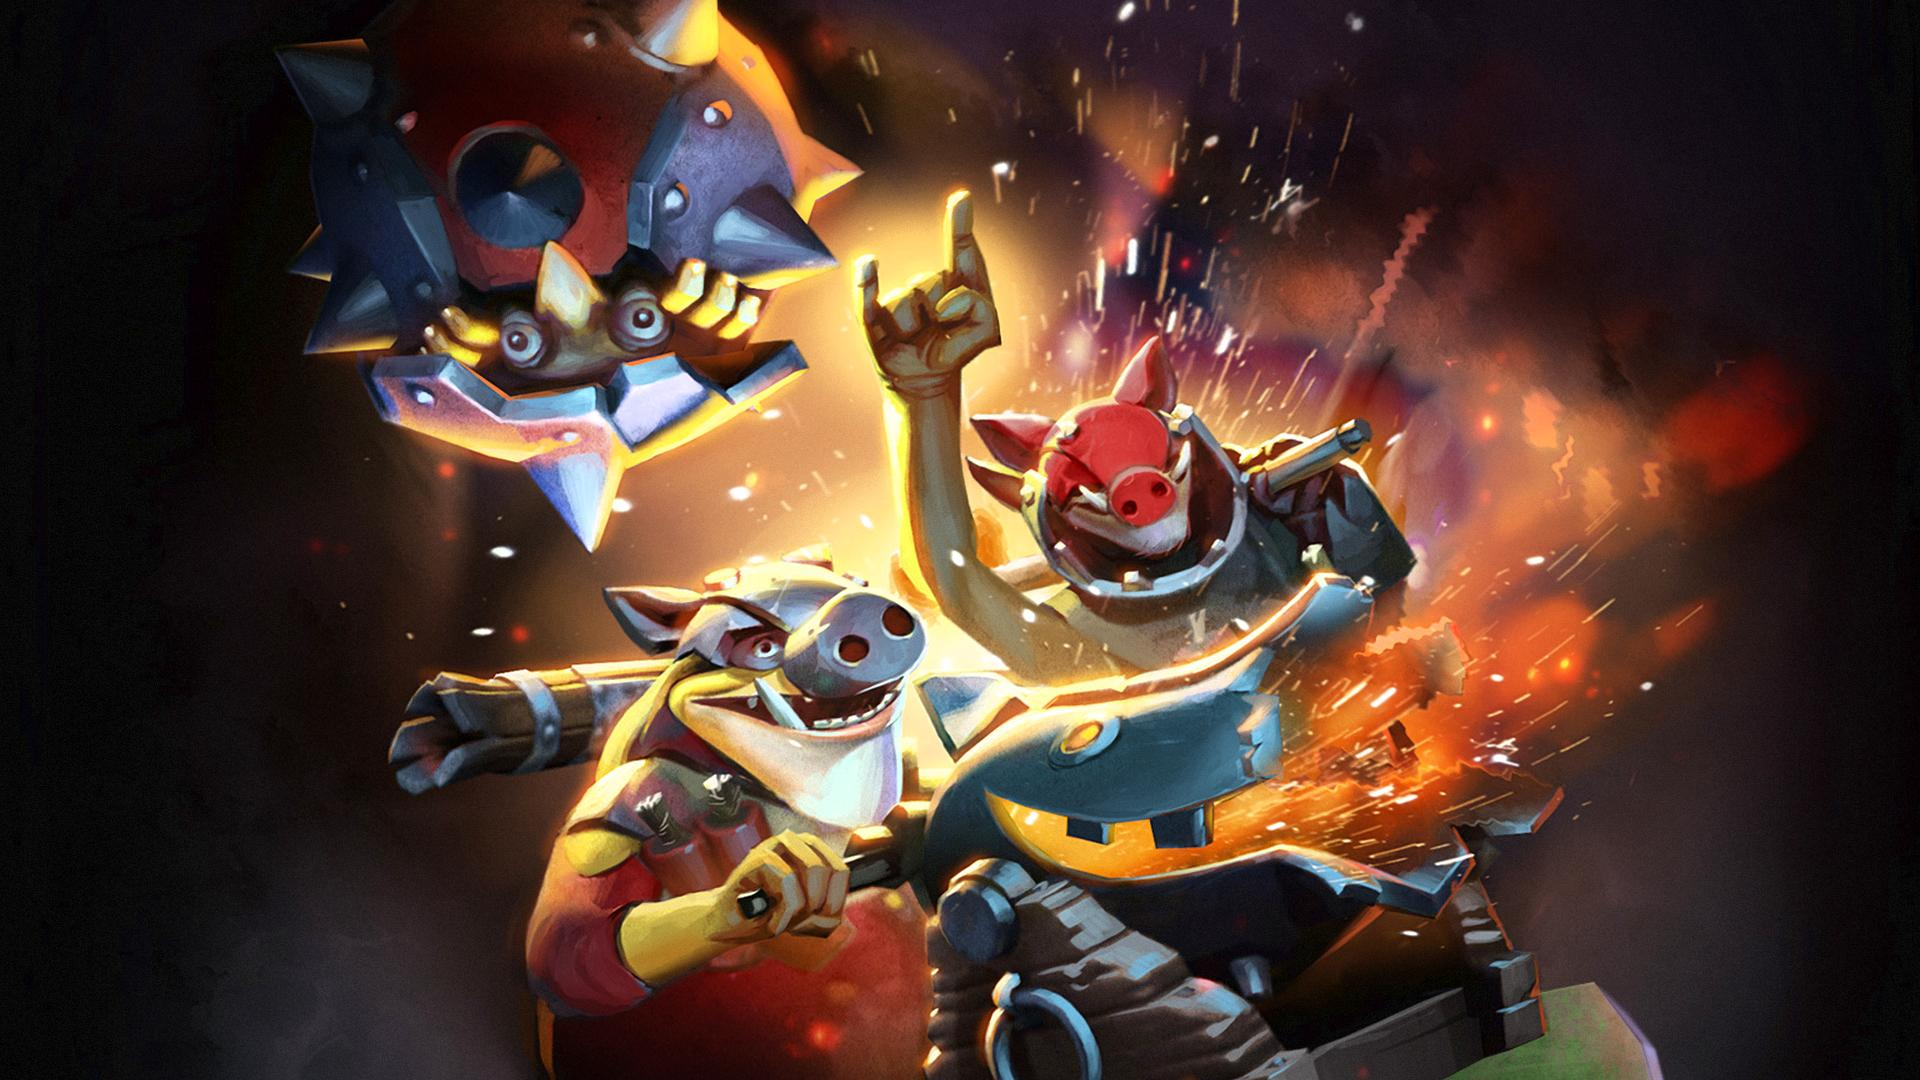 Techies Wallpapers Dota 2 Full HD 1920x1080 Wallpapers